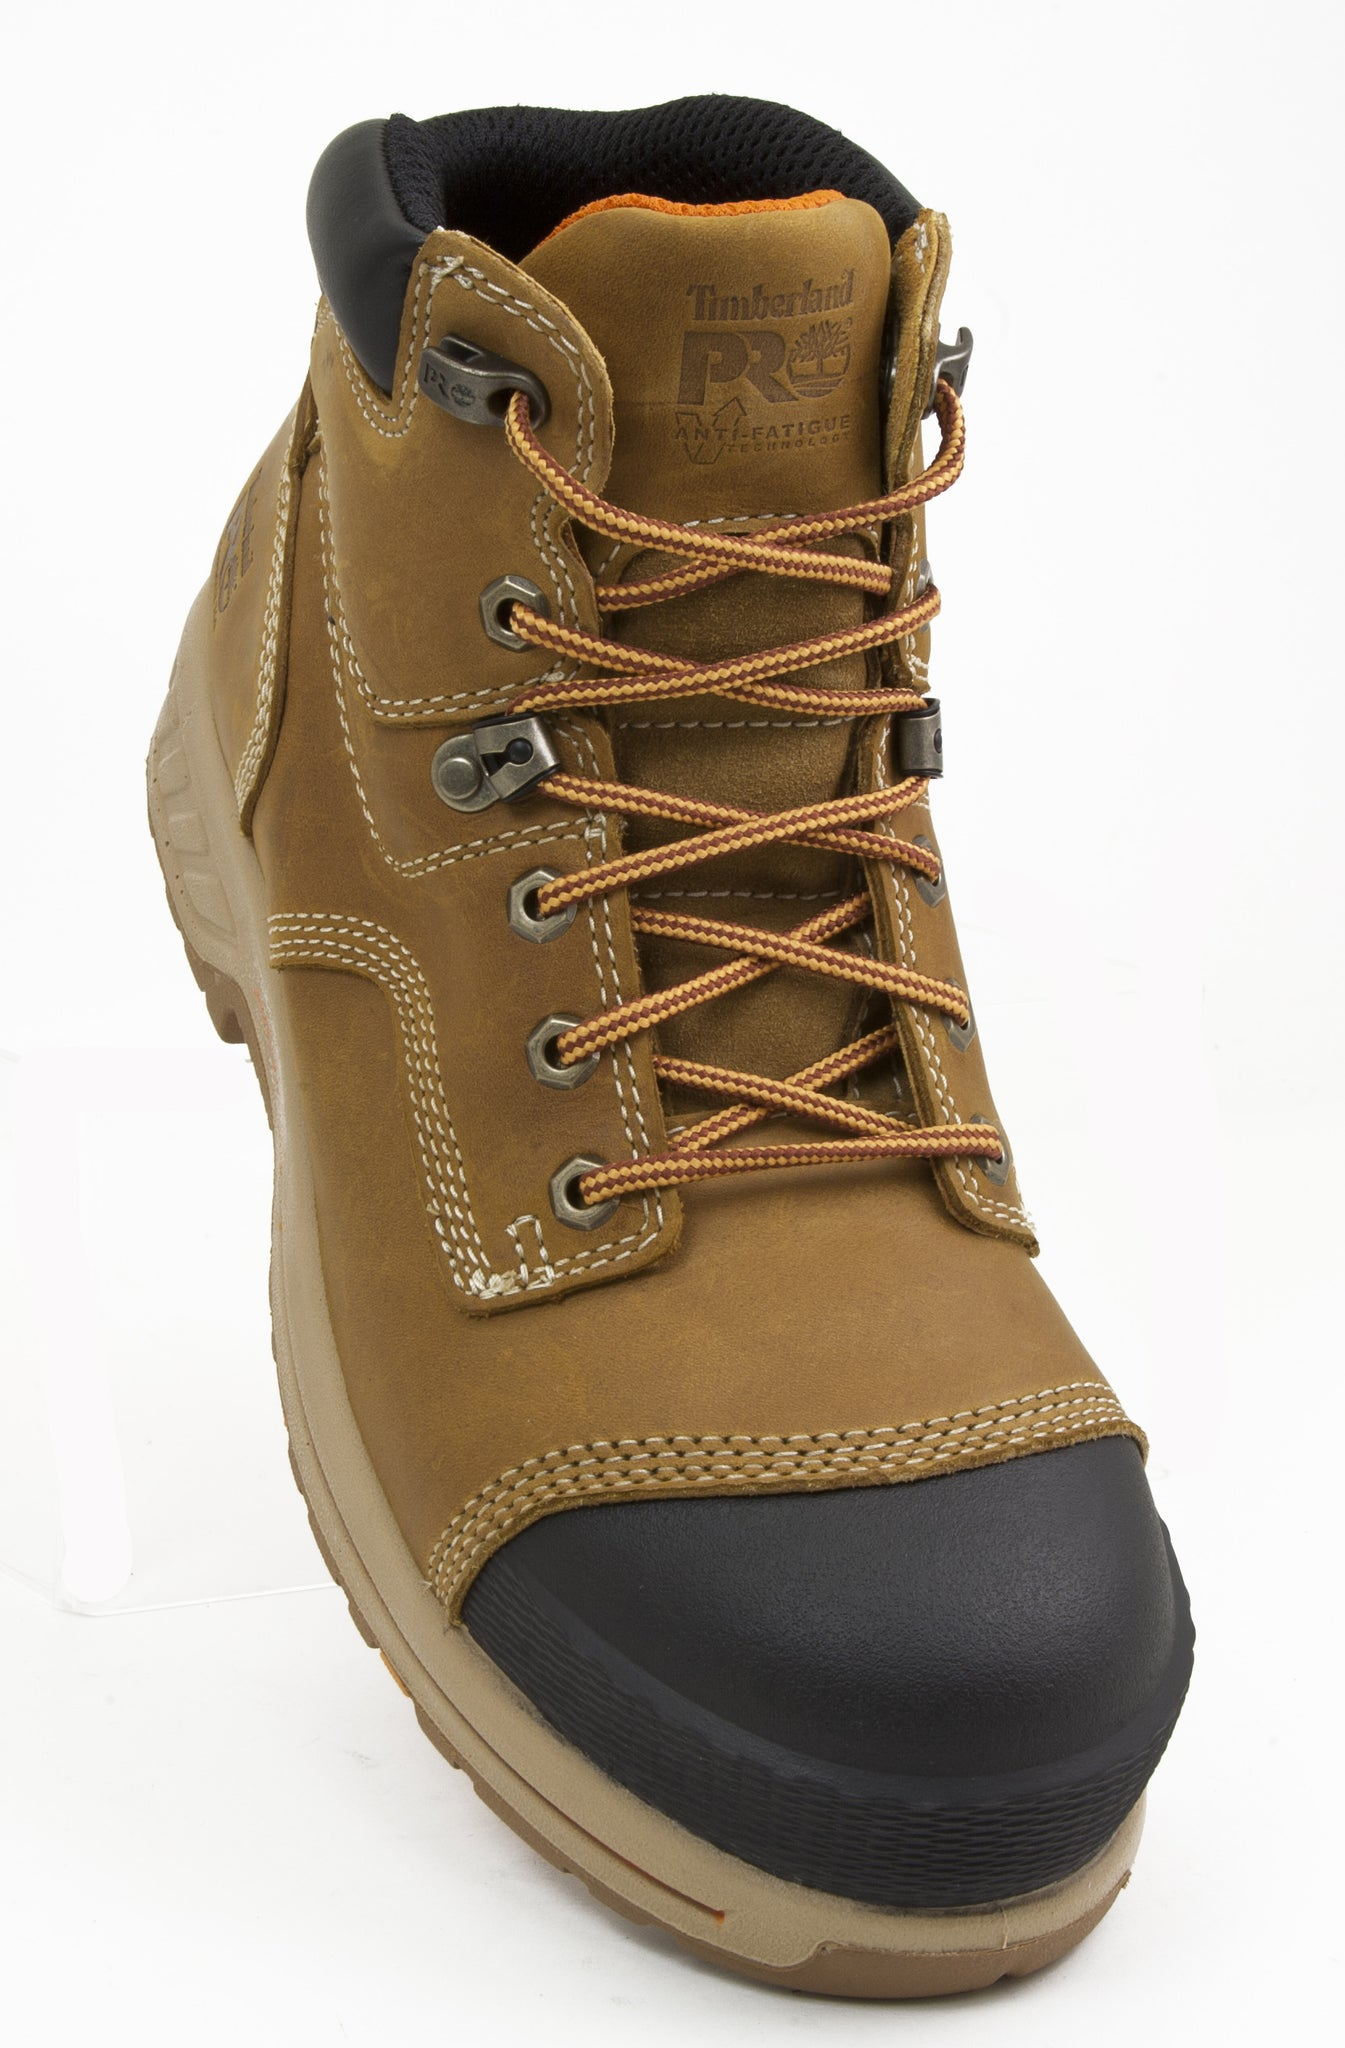 Timberland Pro Helix Tb0a1hpy231 Tan Leather Composite Toe